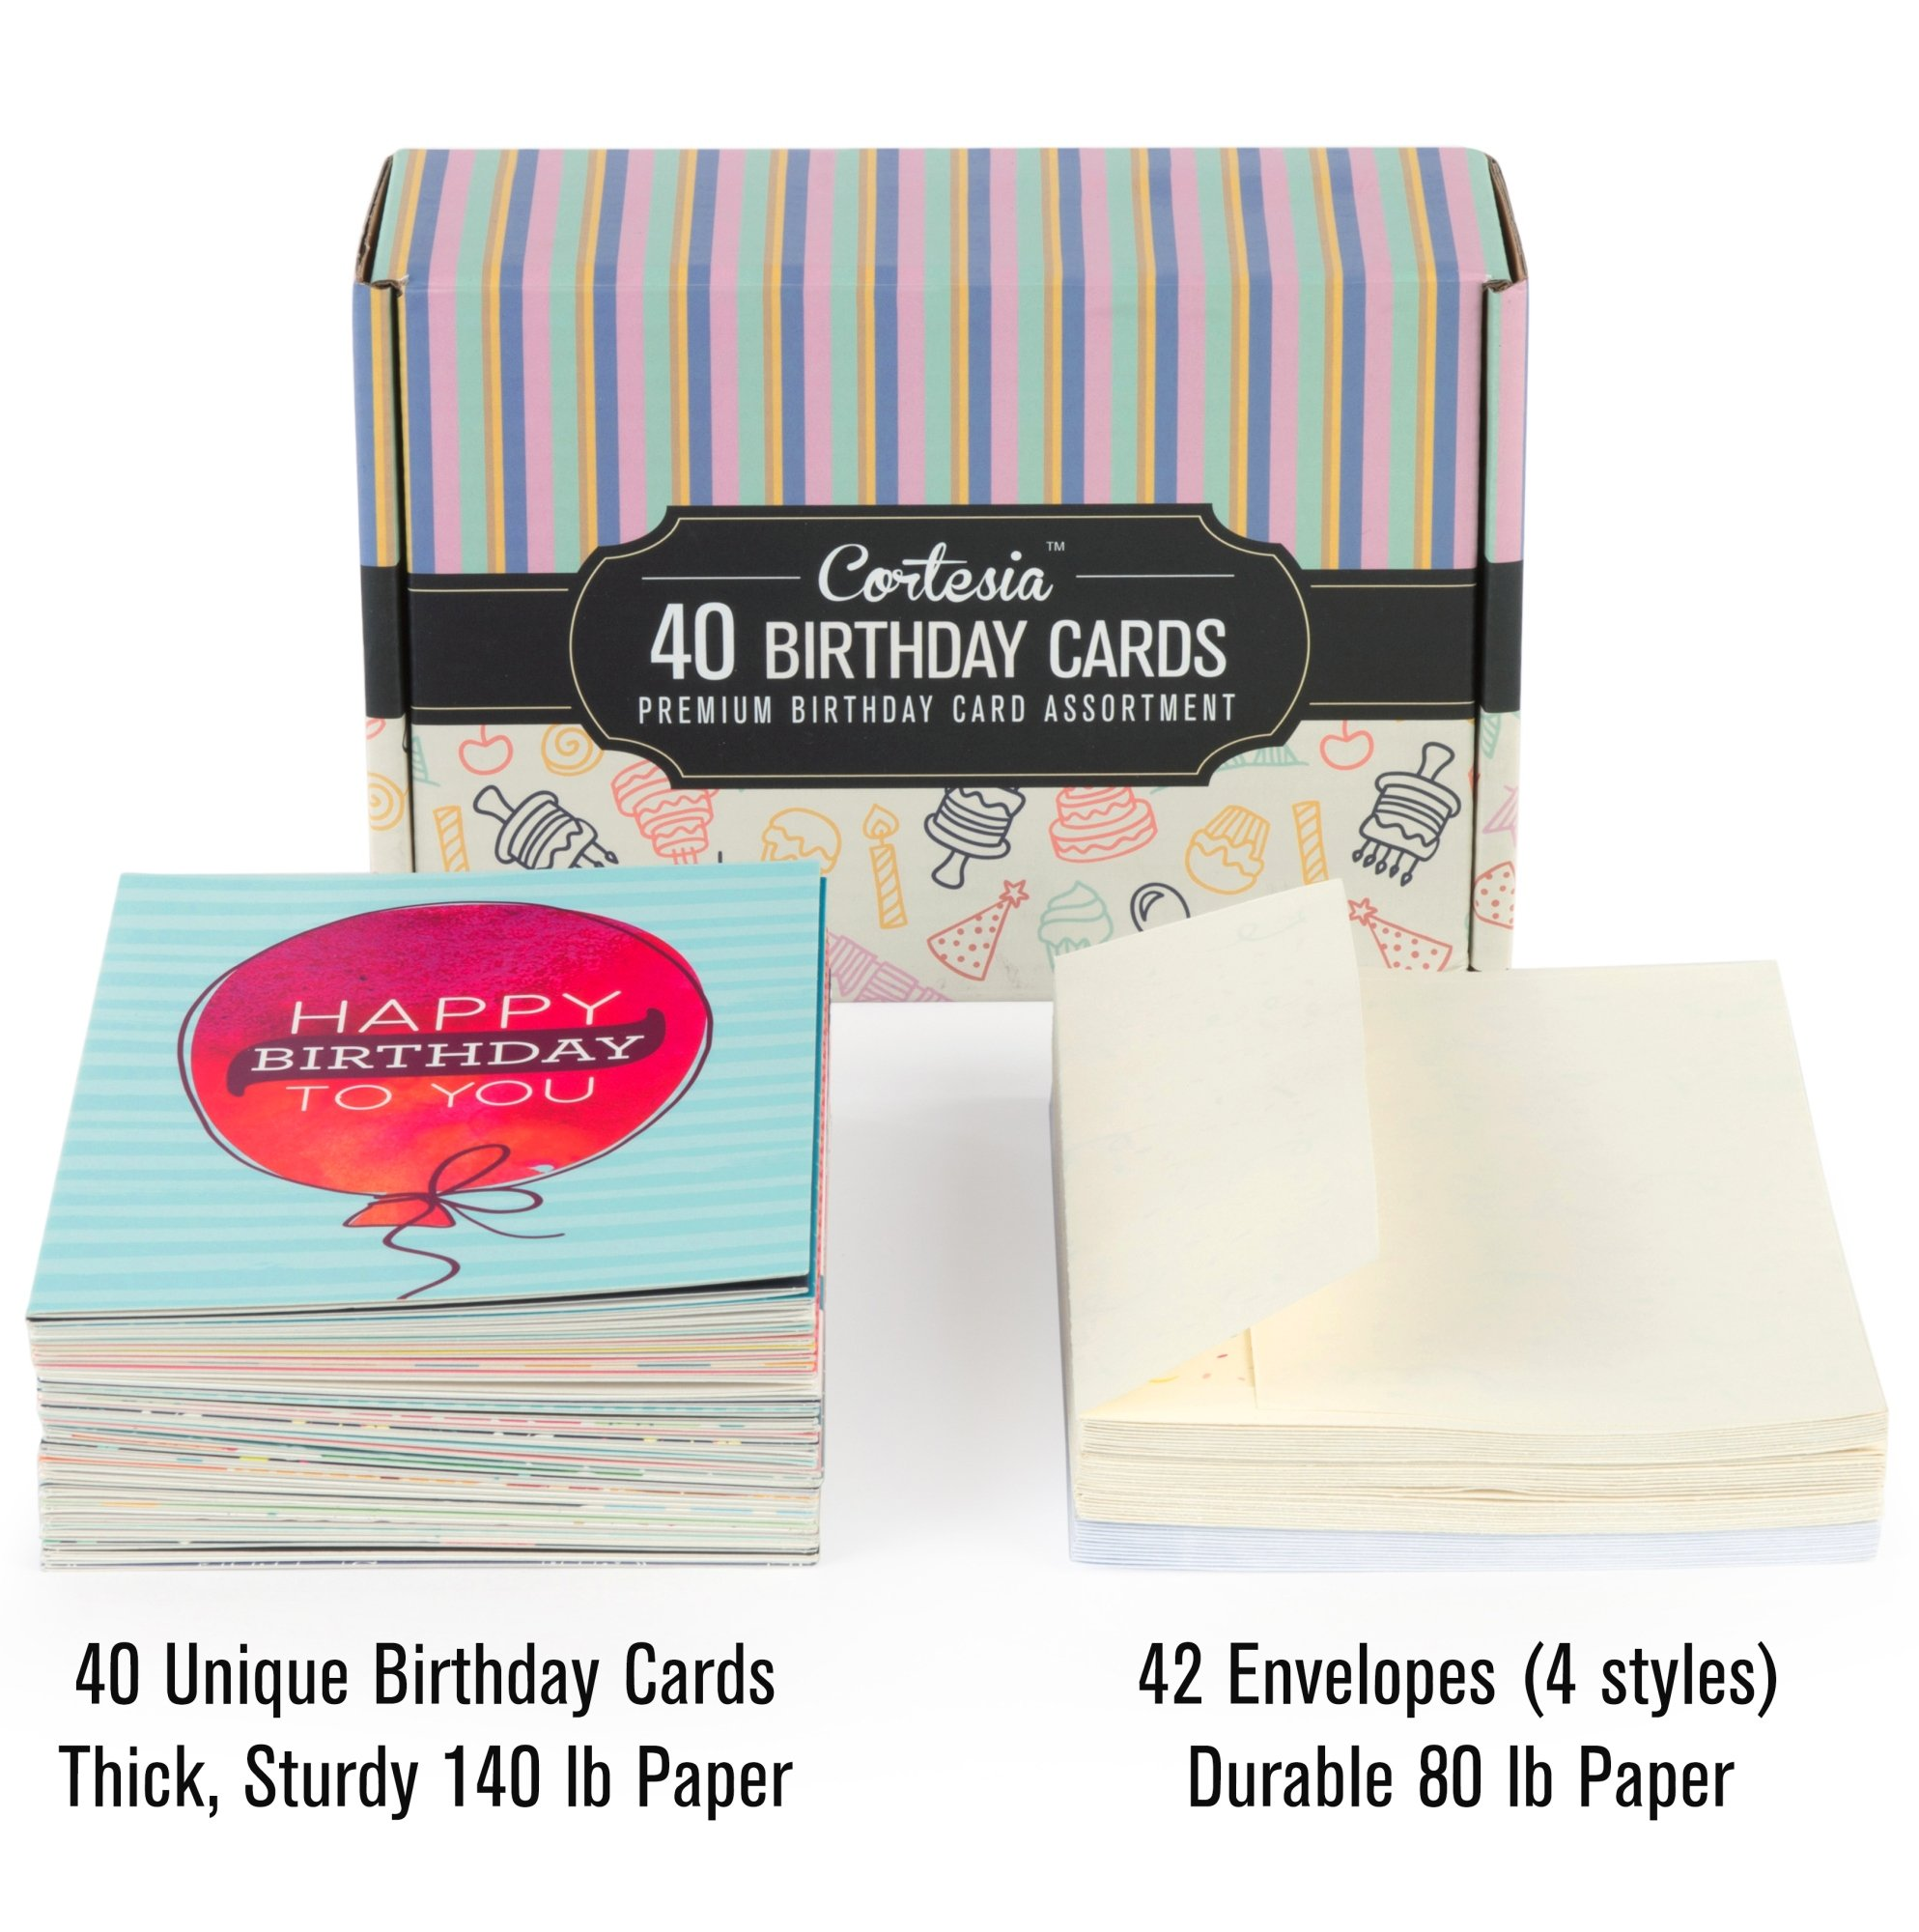 Happy Birthday Cards Bulk Premium Assortment - 40 UNIQUE DESIGNS, GOLD EMBELLISHMENTS, ENVELOPES WITH PATTERNS. The Ultimate Boxed Set of Bday Cards. by Cortesia (Image #6)